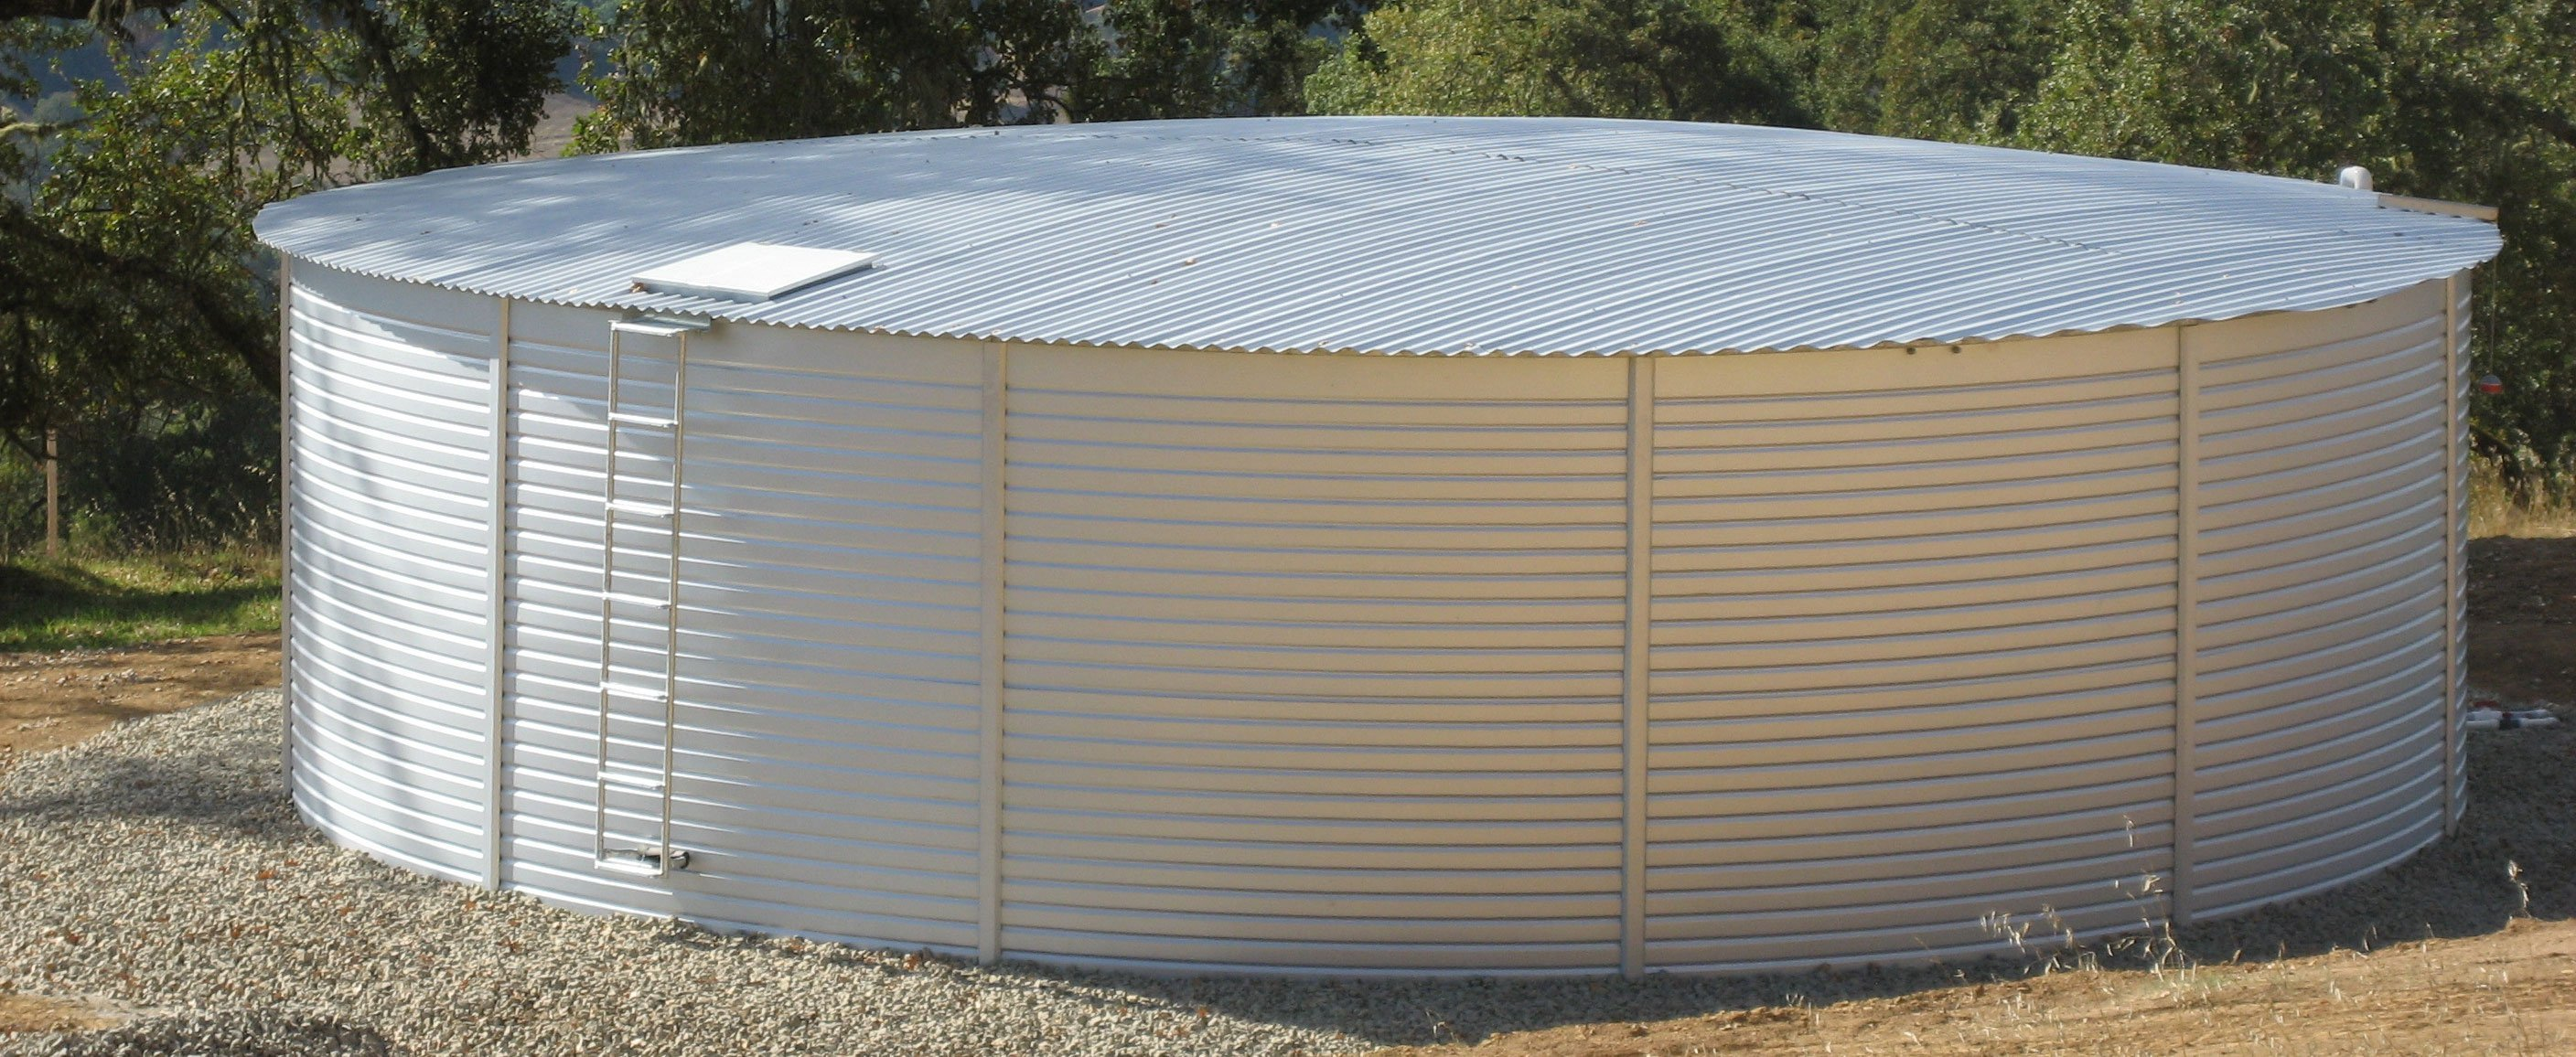 40,000 gallon water storage tanks on sale